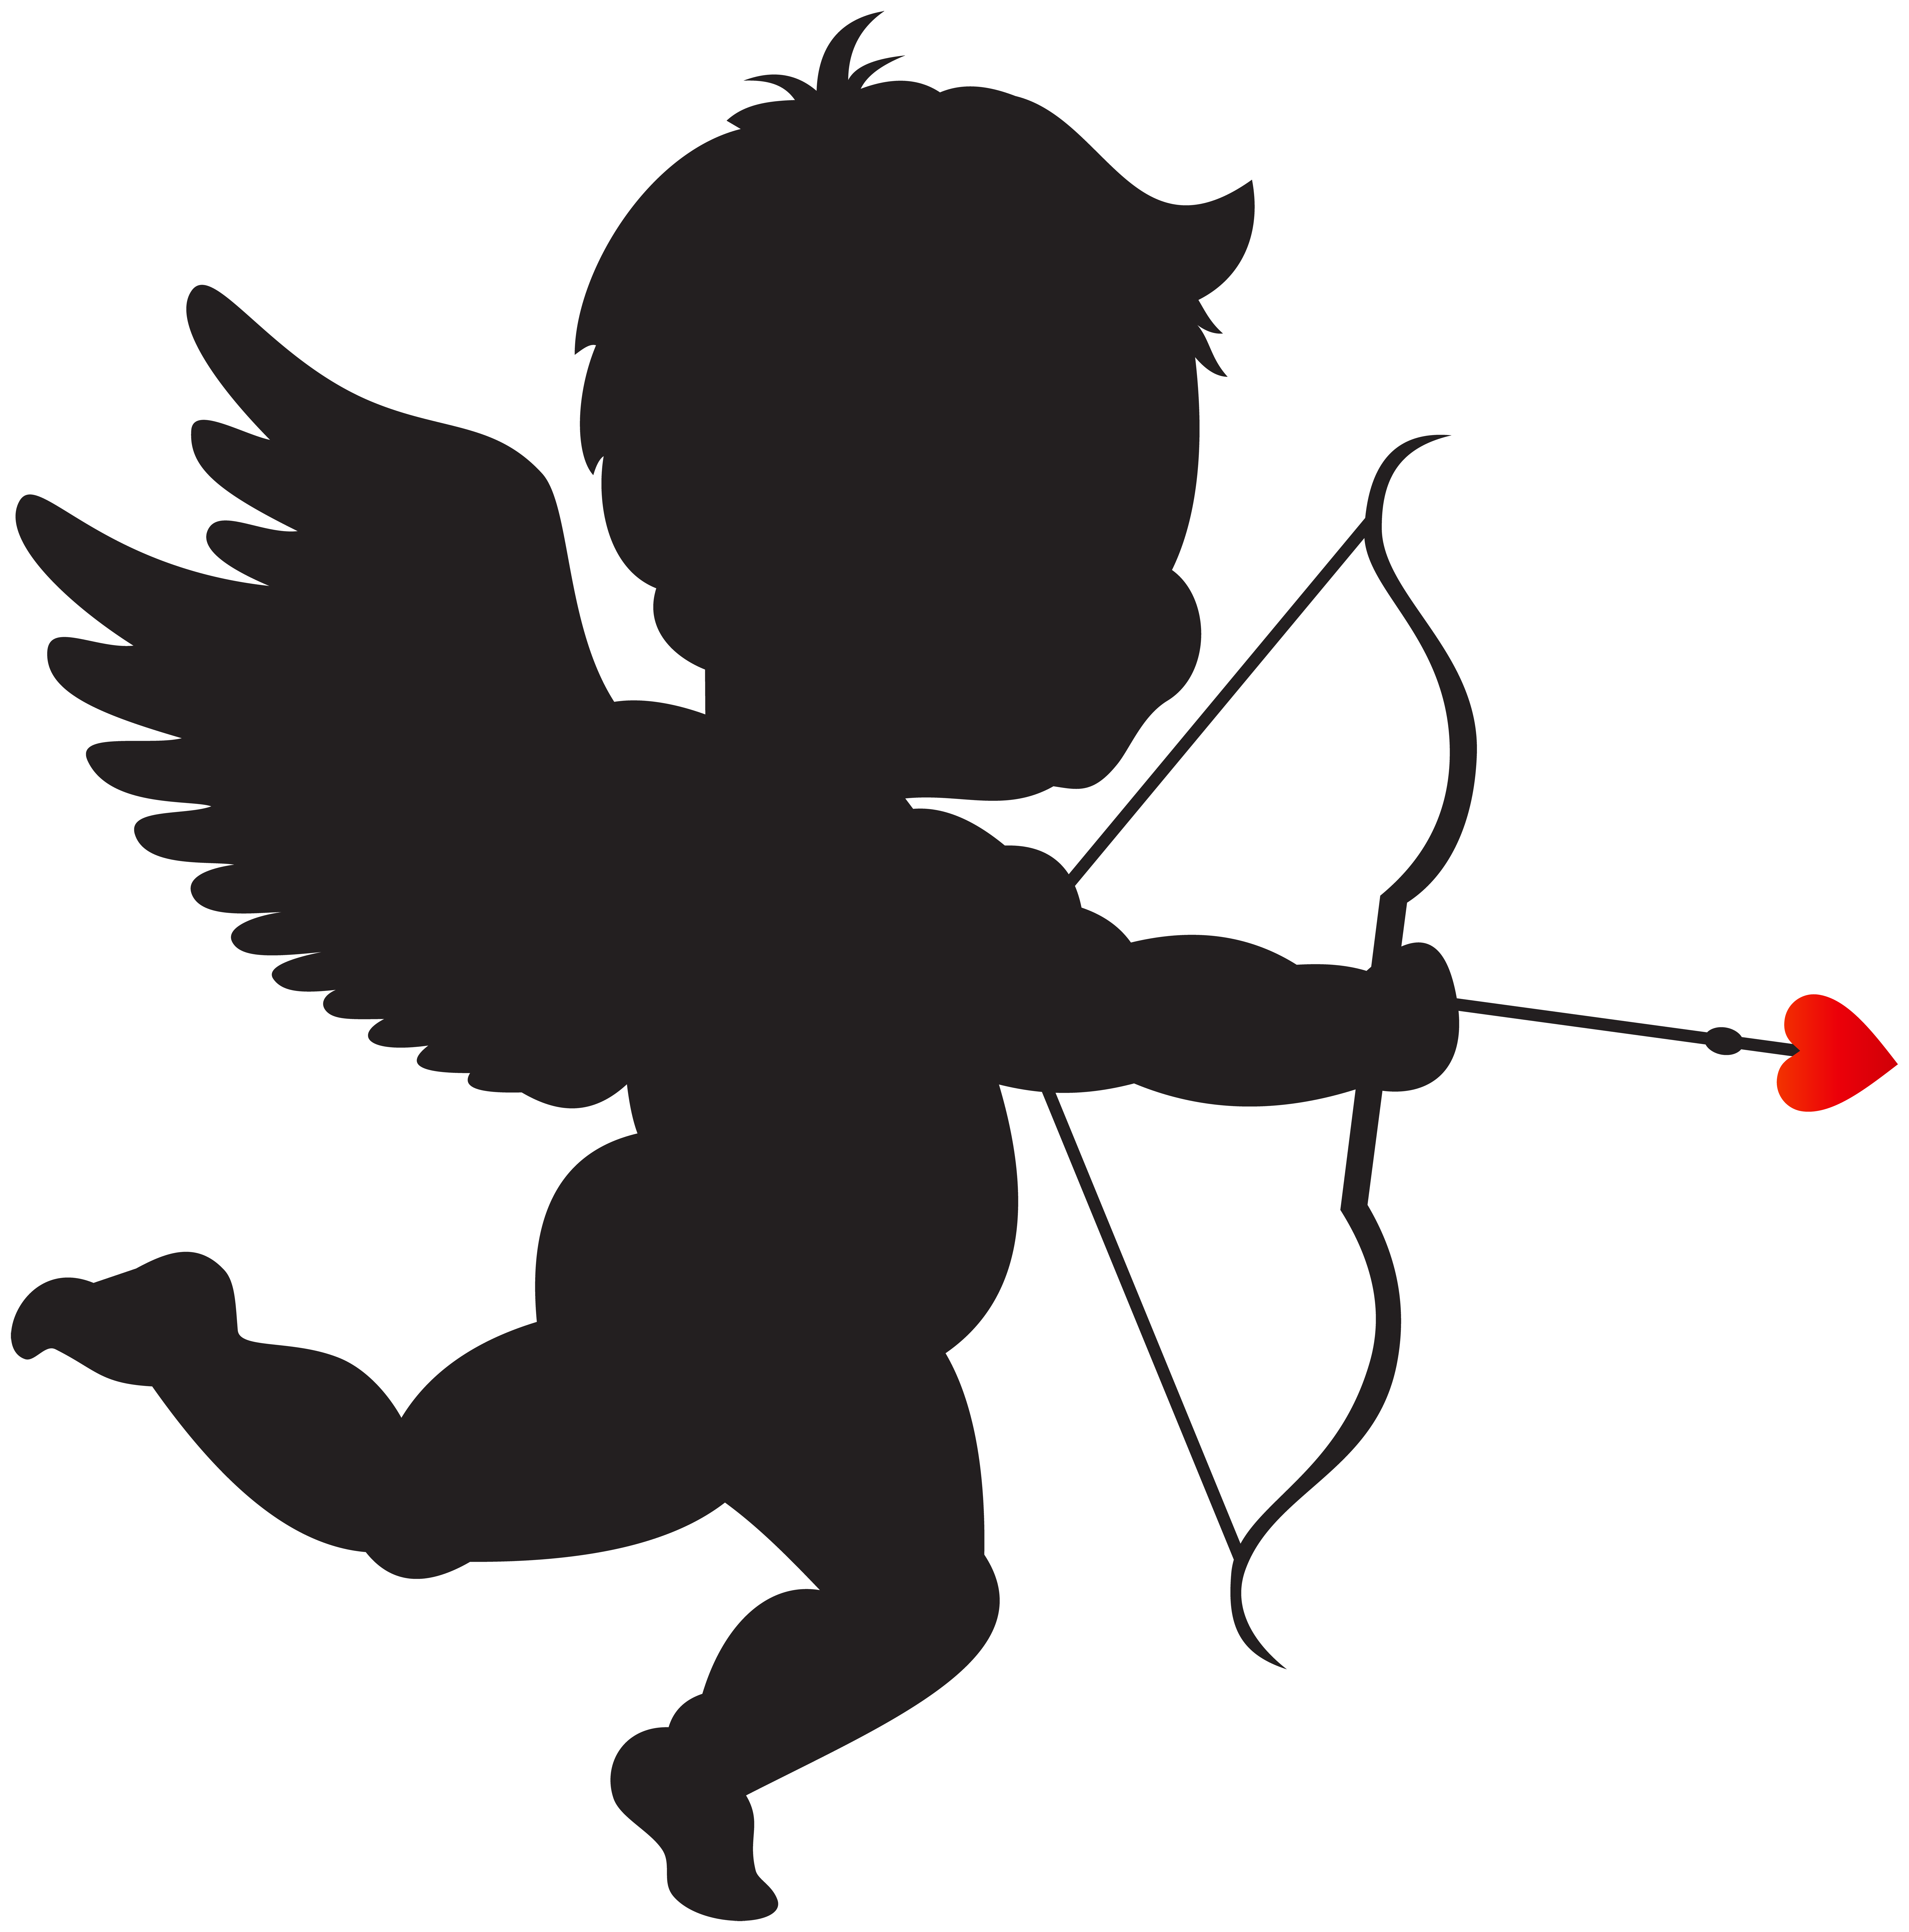 Cupid clipart. With bow silhouette png